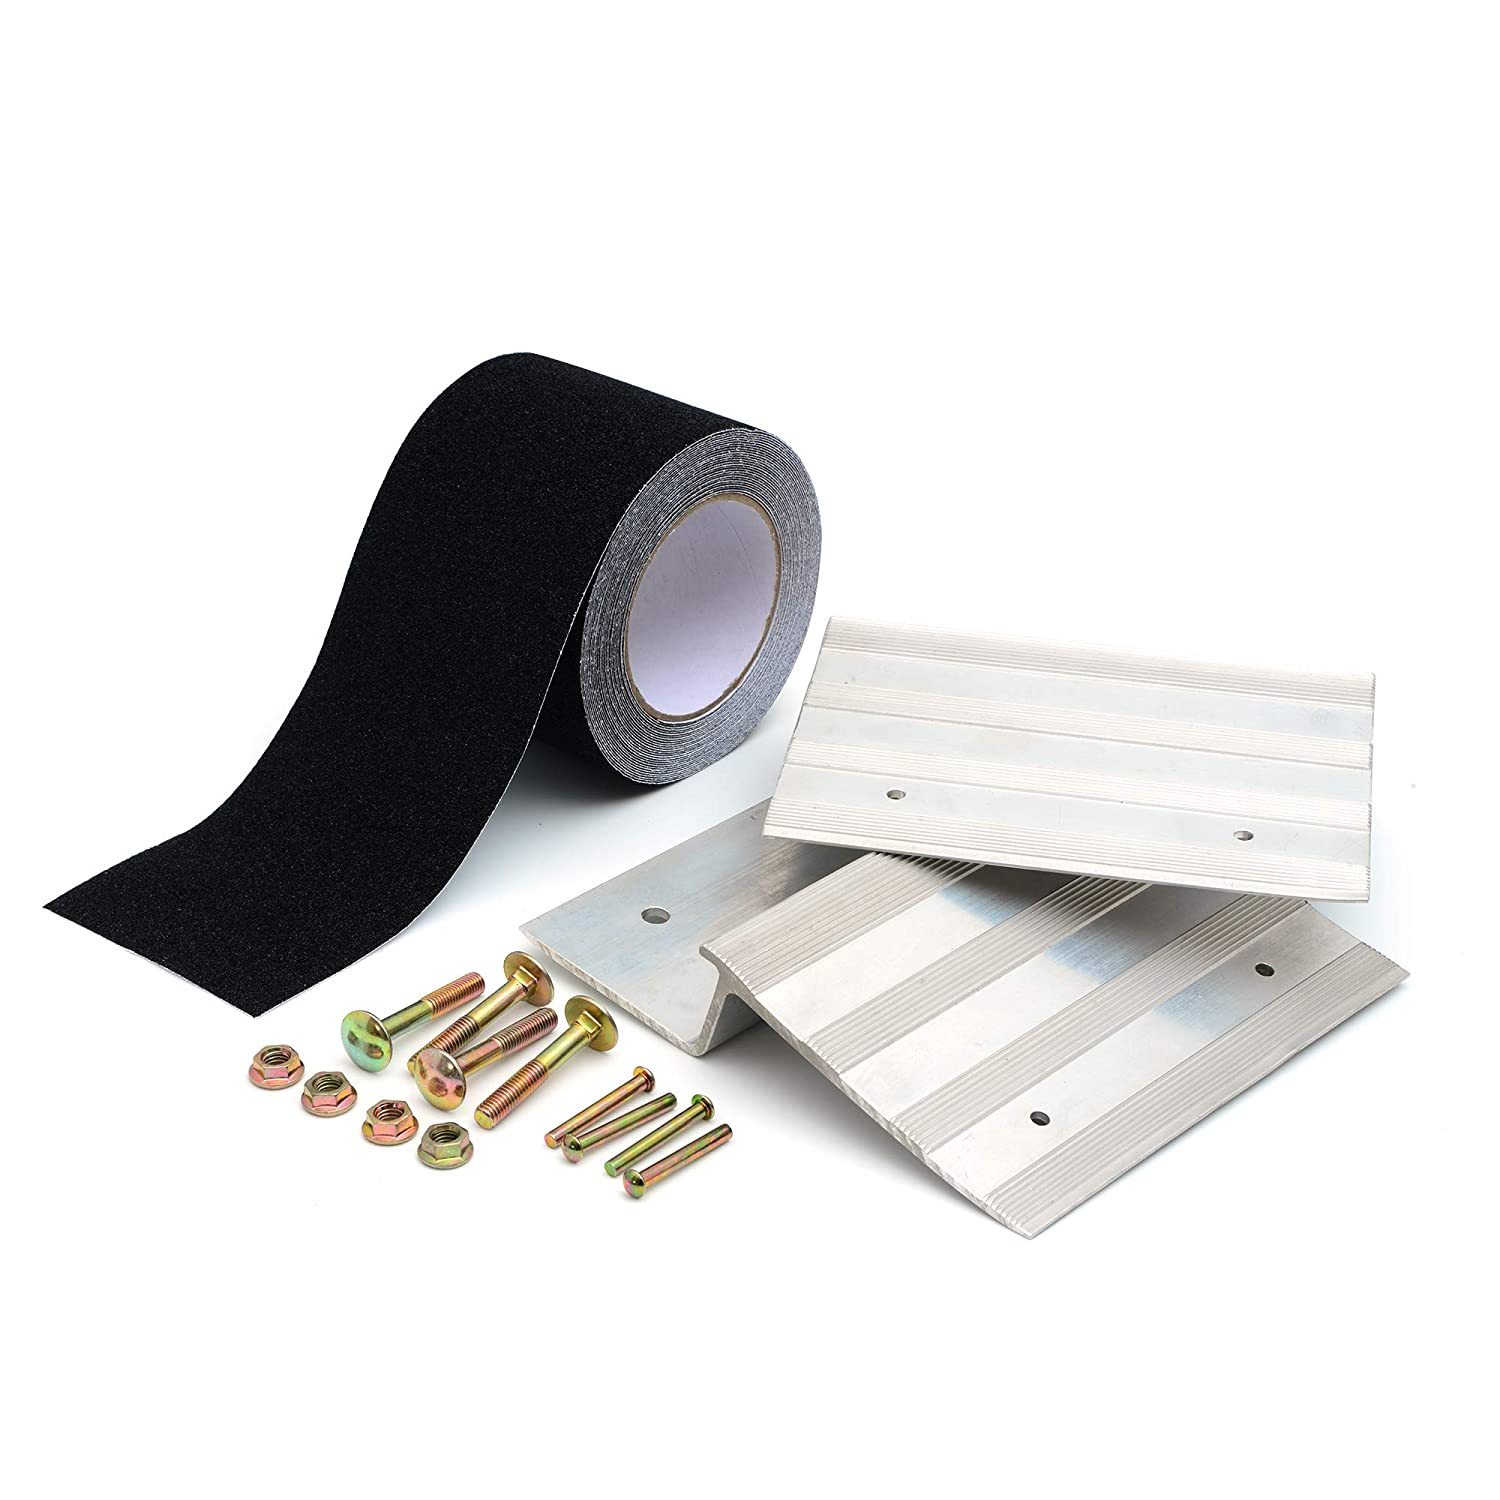 8-inch Aluminum Quick-Ramp Kit by AFA Tooling Wide Truck Ramps